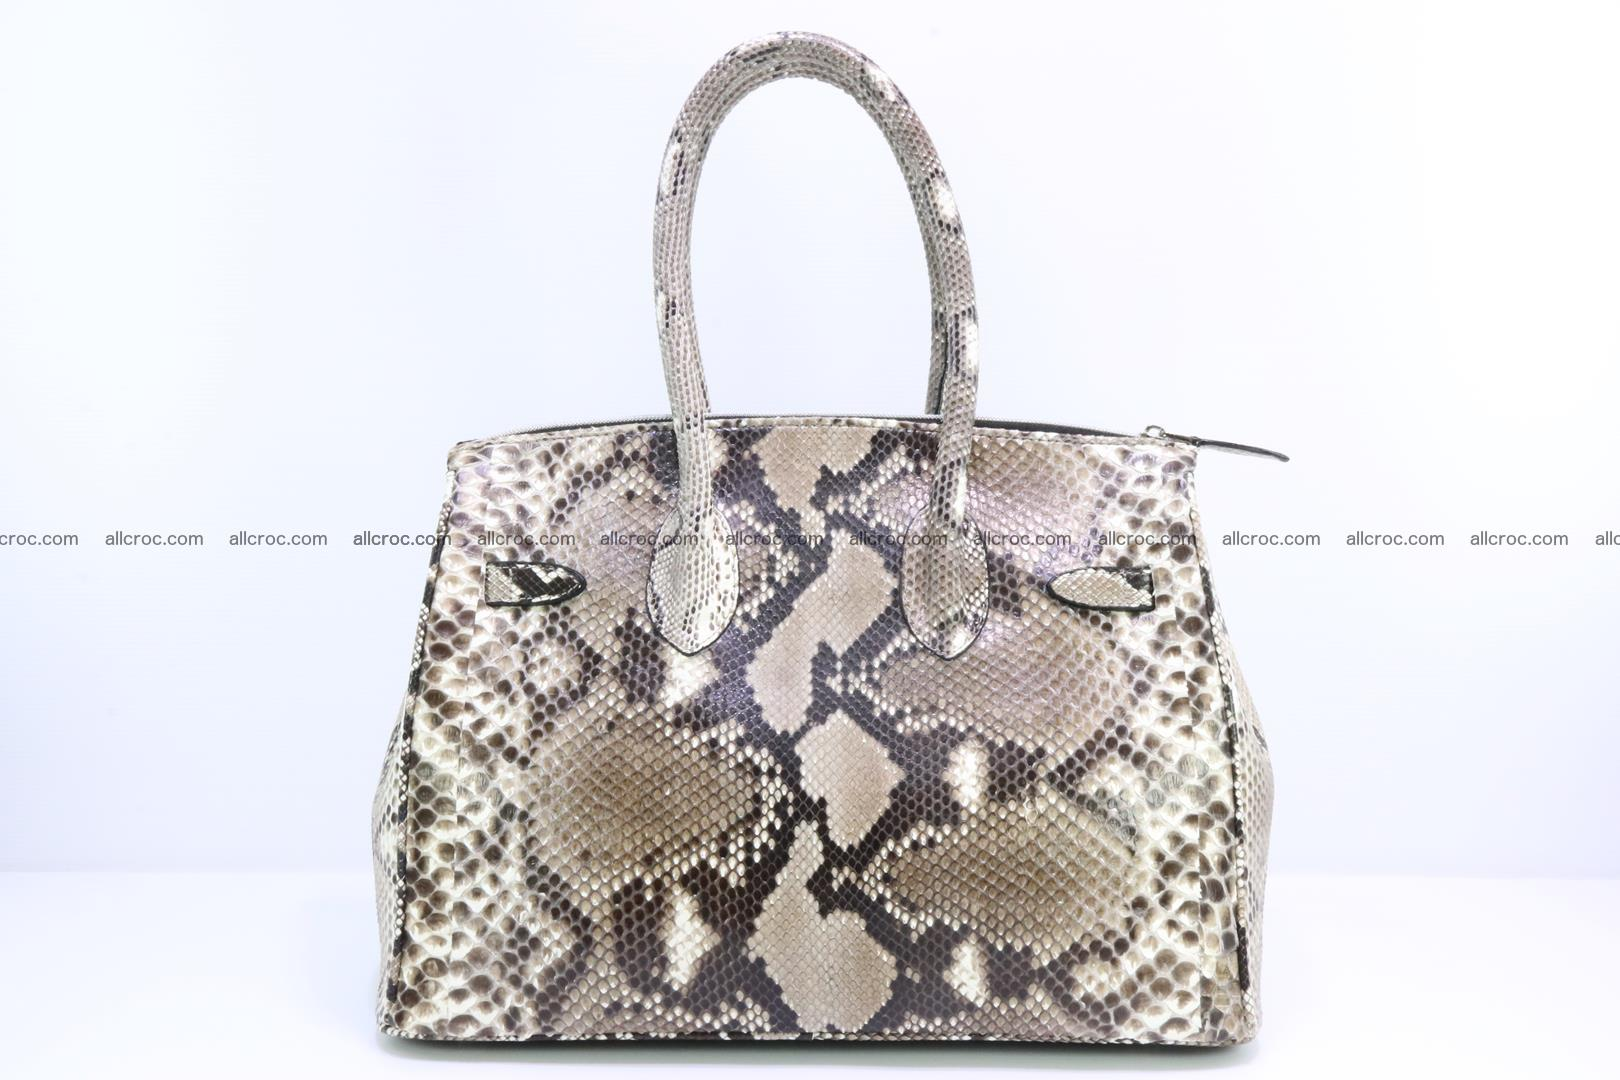 Python skin women's handbag replica of Birkin 200 Foto 3